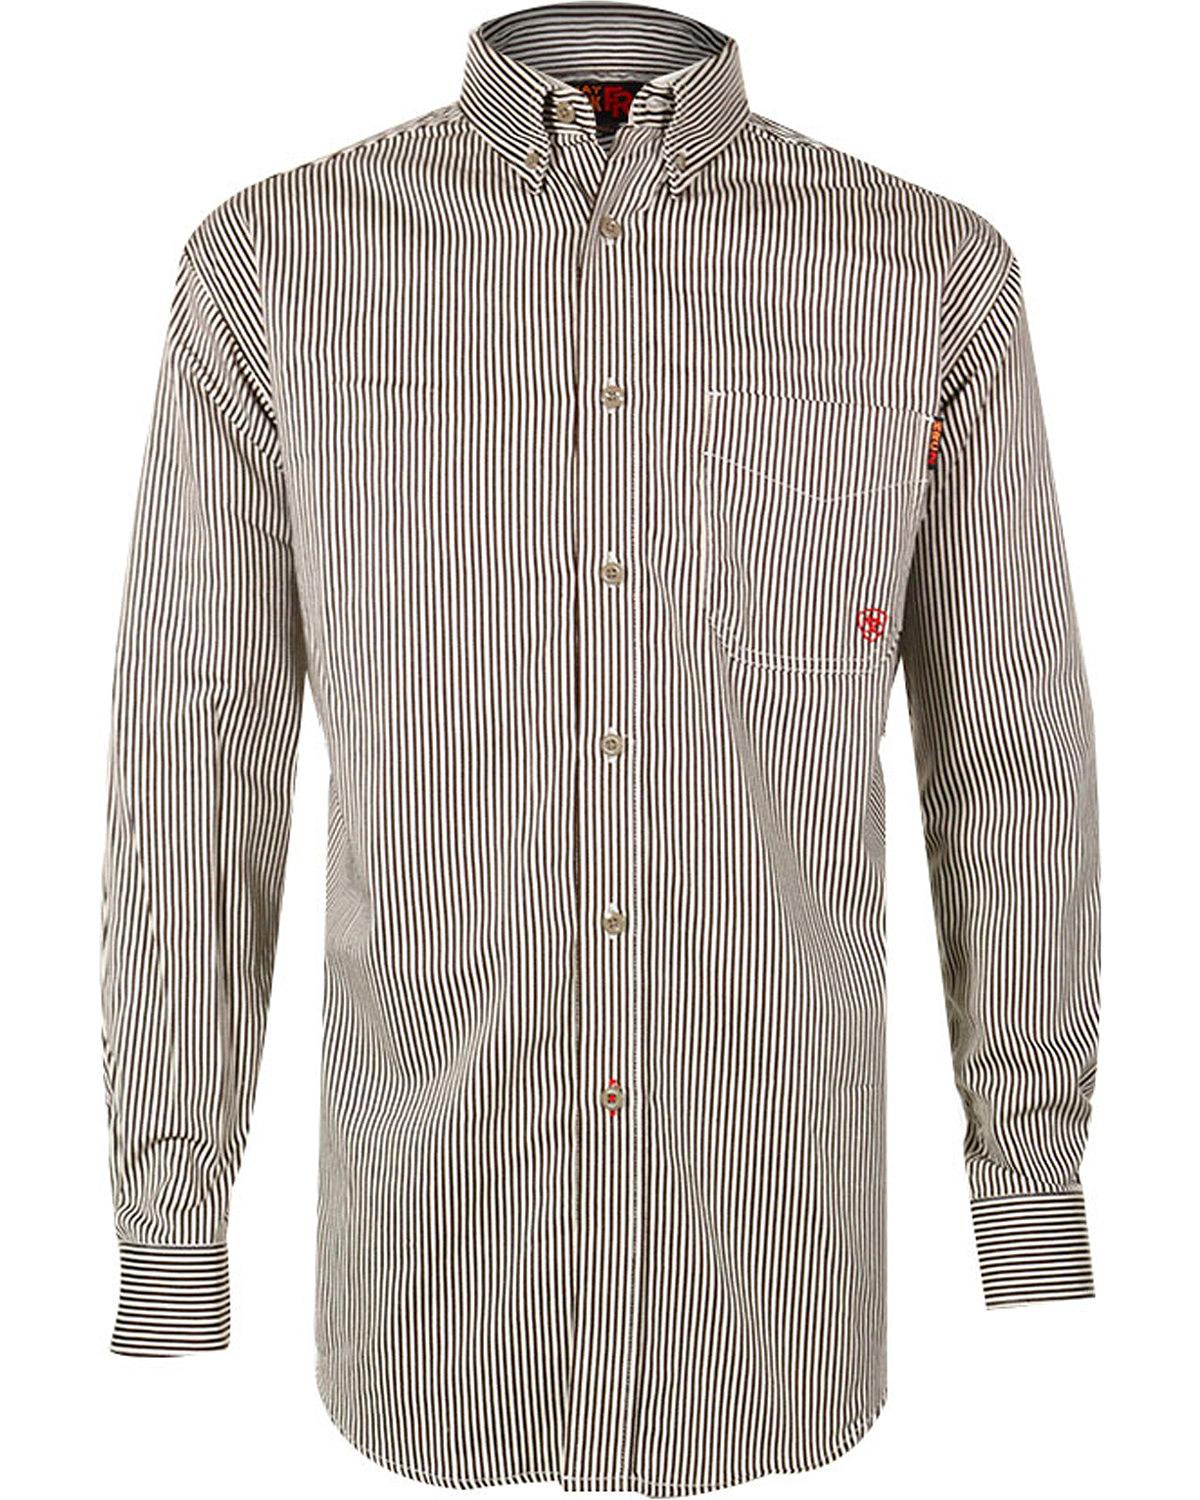 Ariat Fr Work Shirts - DREAMWORKS